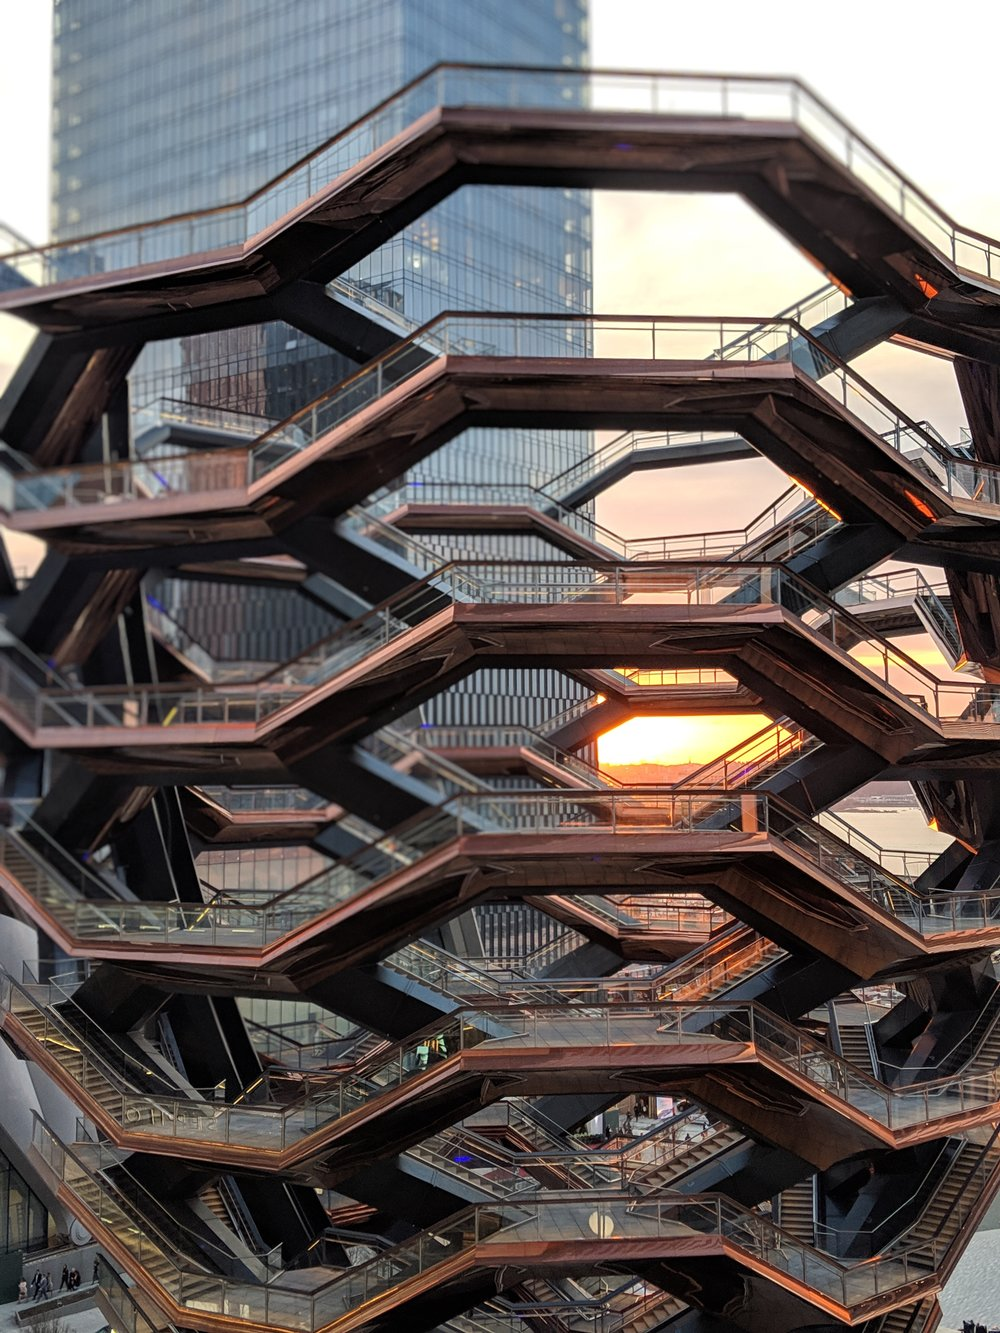 THE VESSEL  A public structure, built as part of the Hudson Yards Redevelopment Project in New York City. Construction started in April 2017 and opened on March 15, 2019.